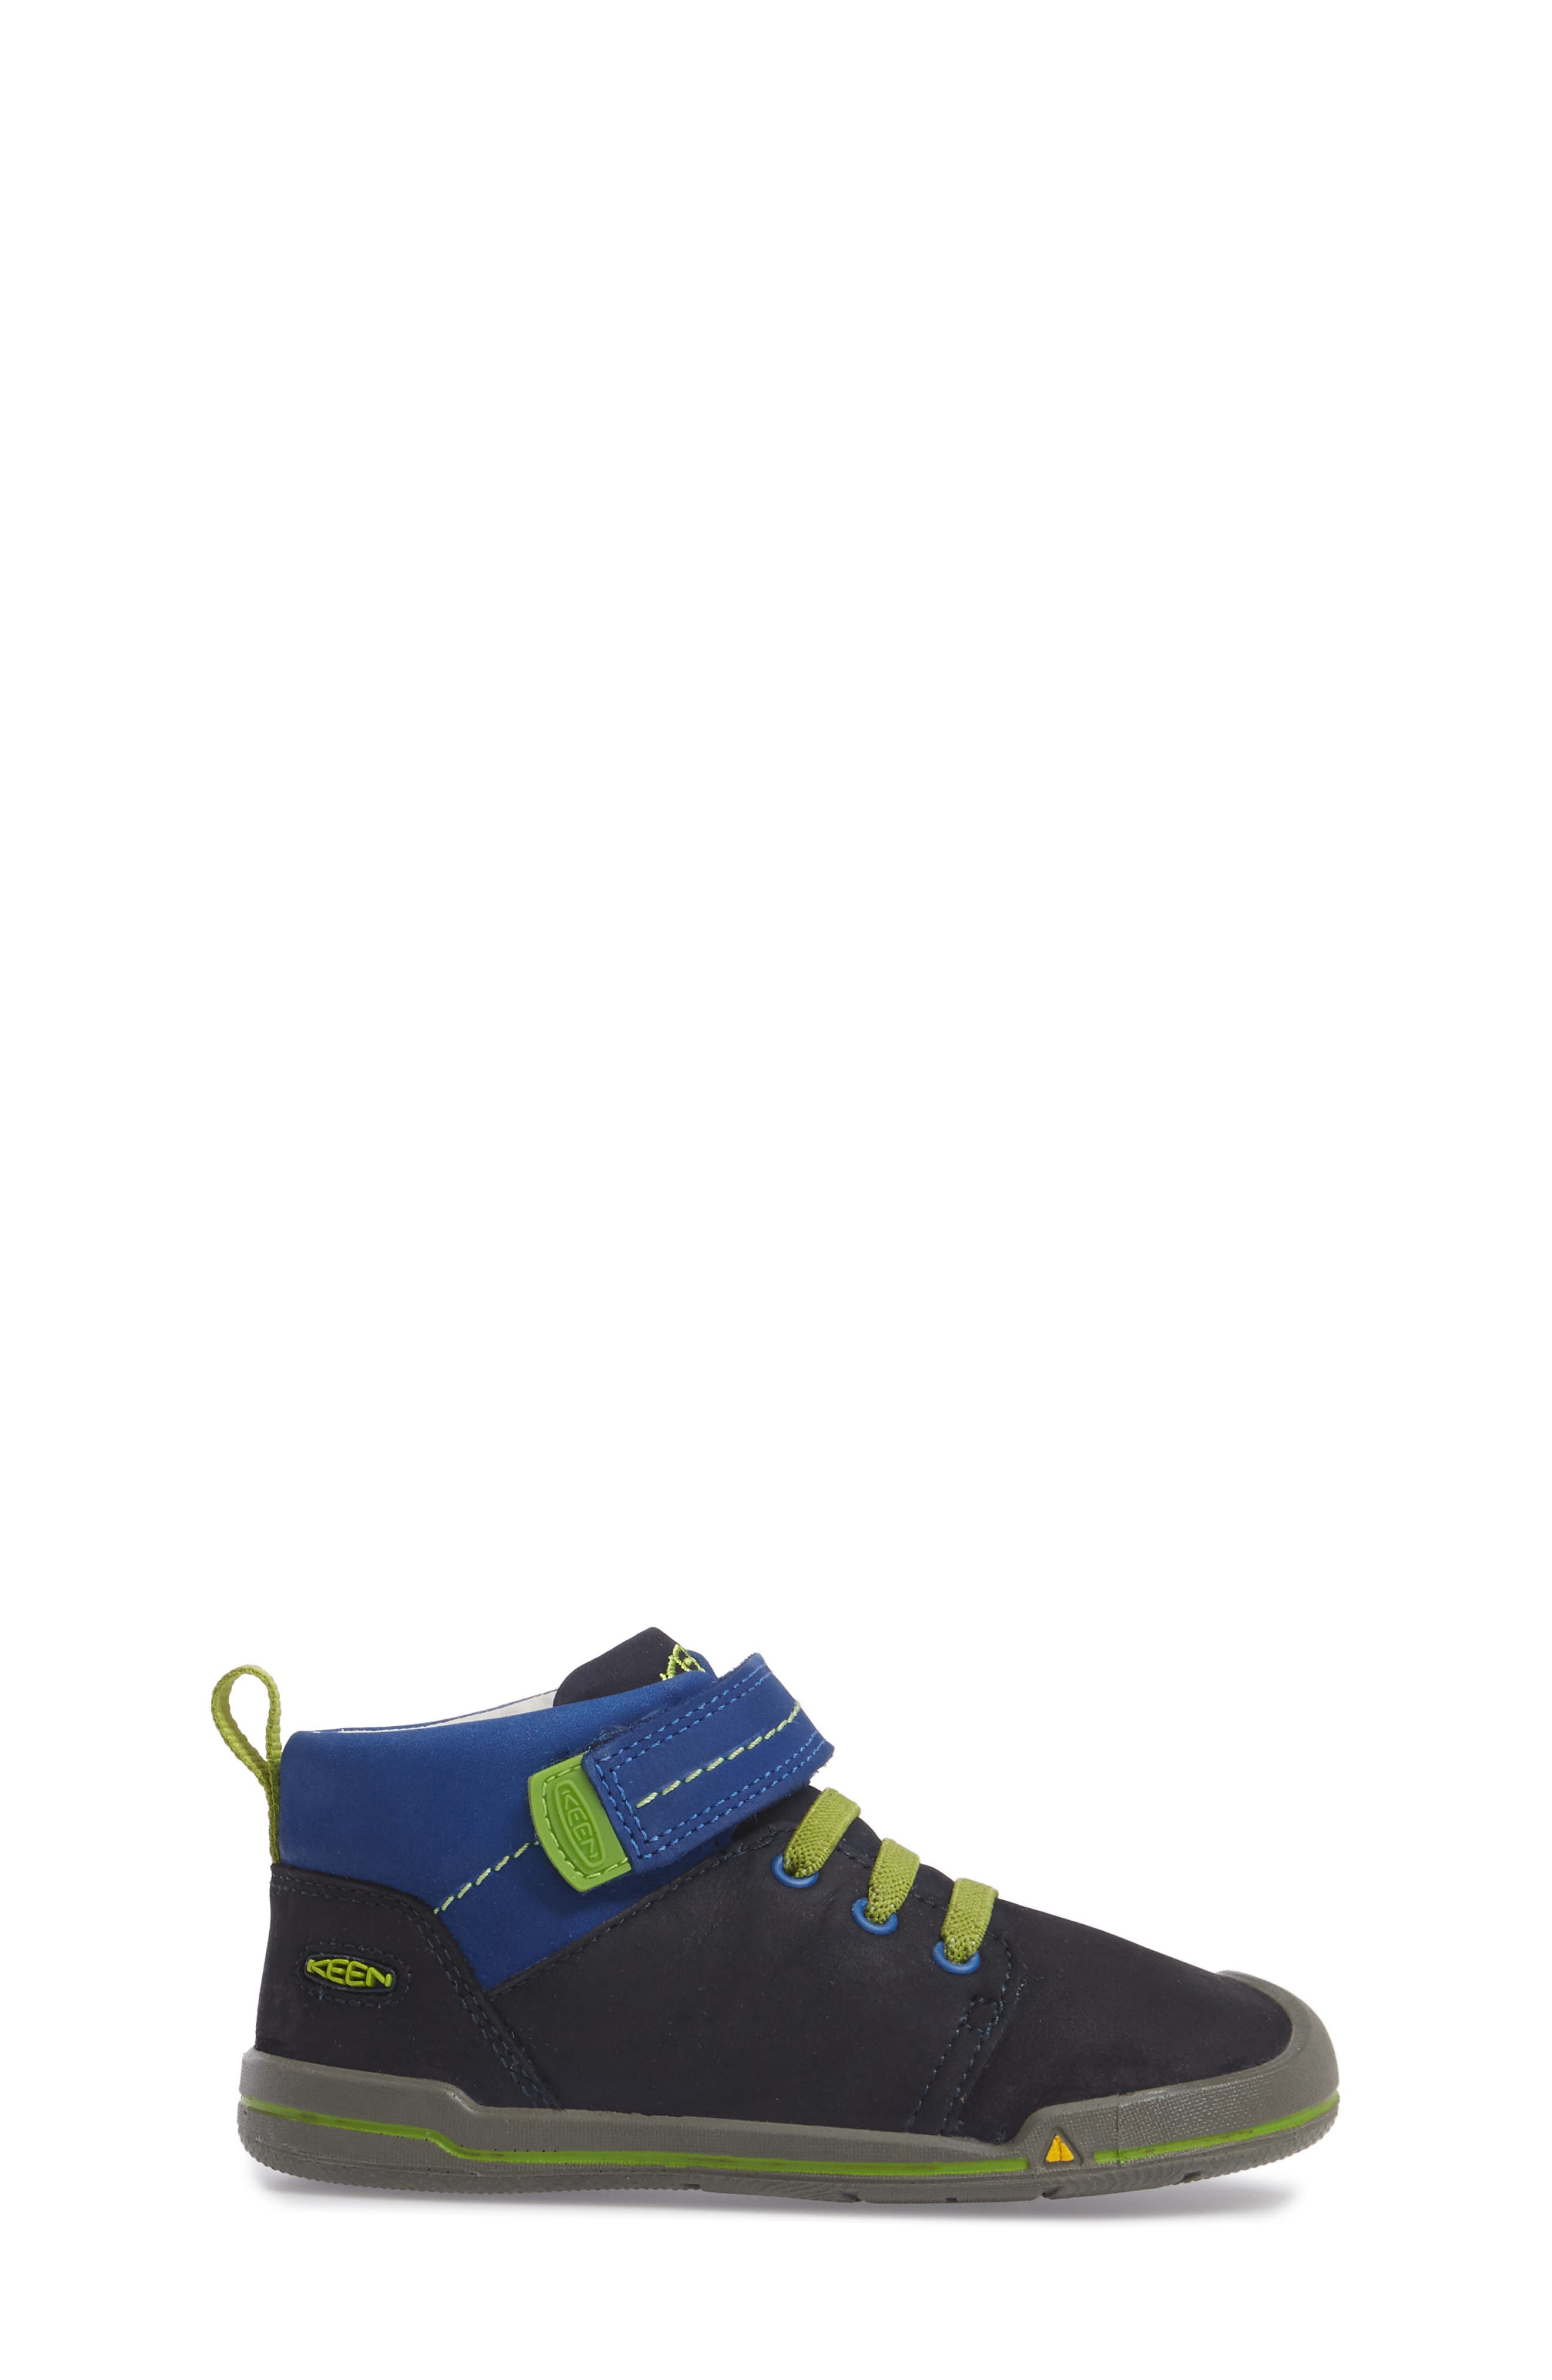 Sprout Mid Sneaker,                             Alternate thumbnail 3, color,                             400